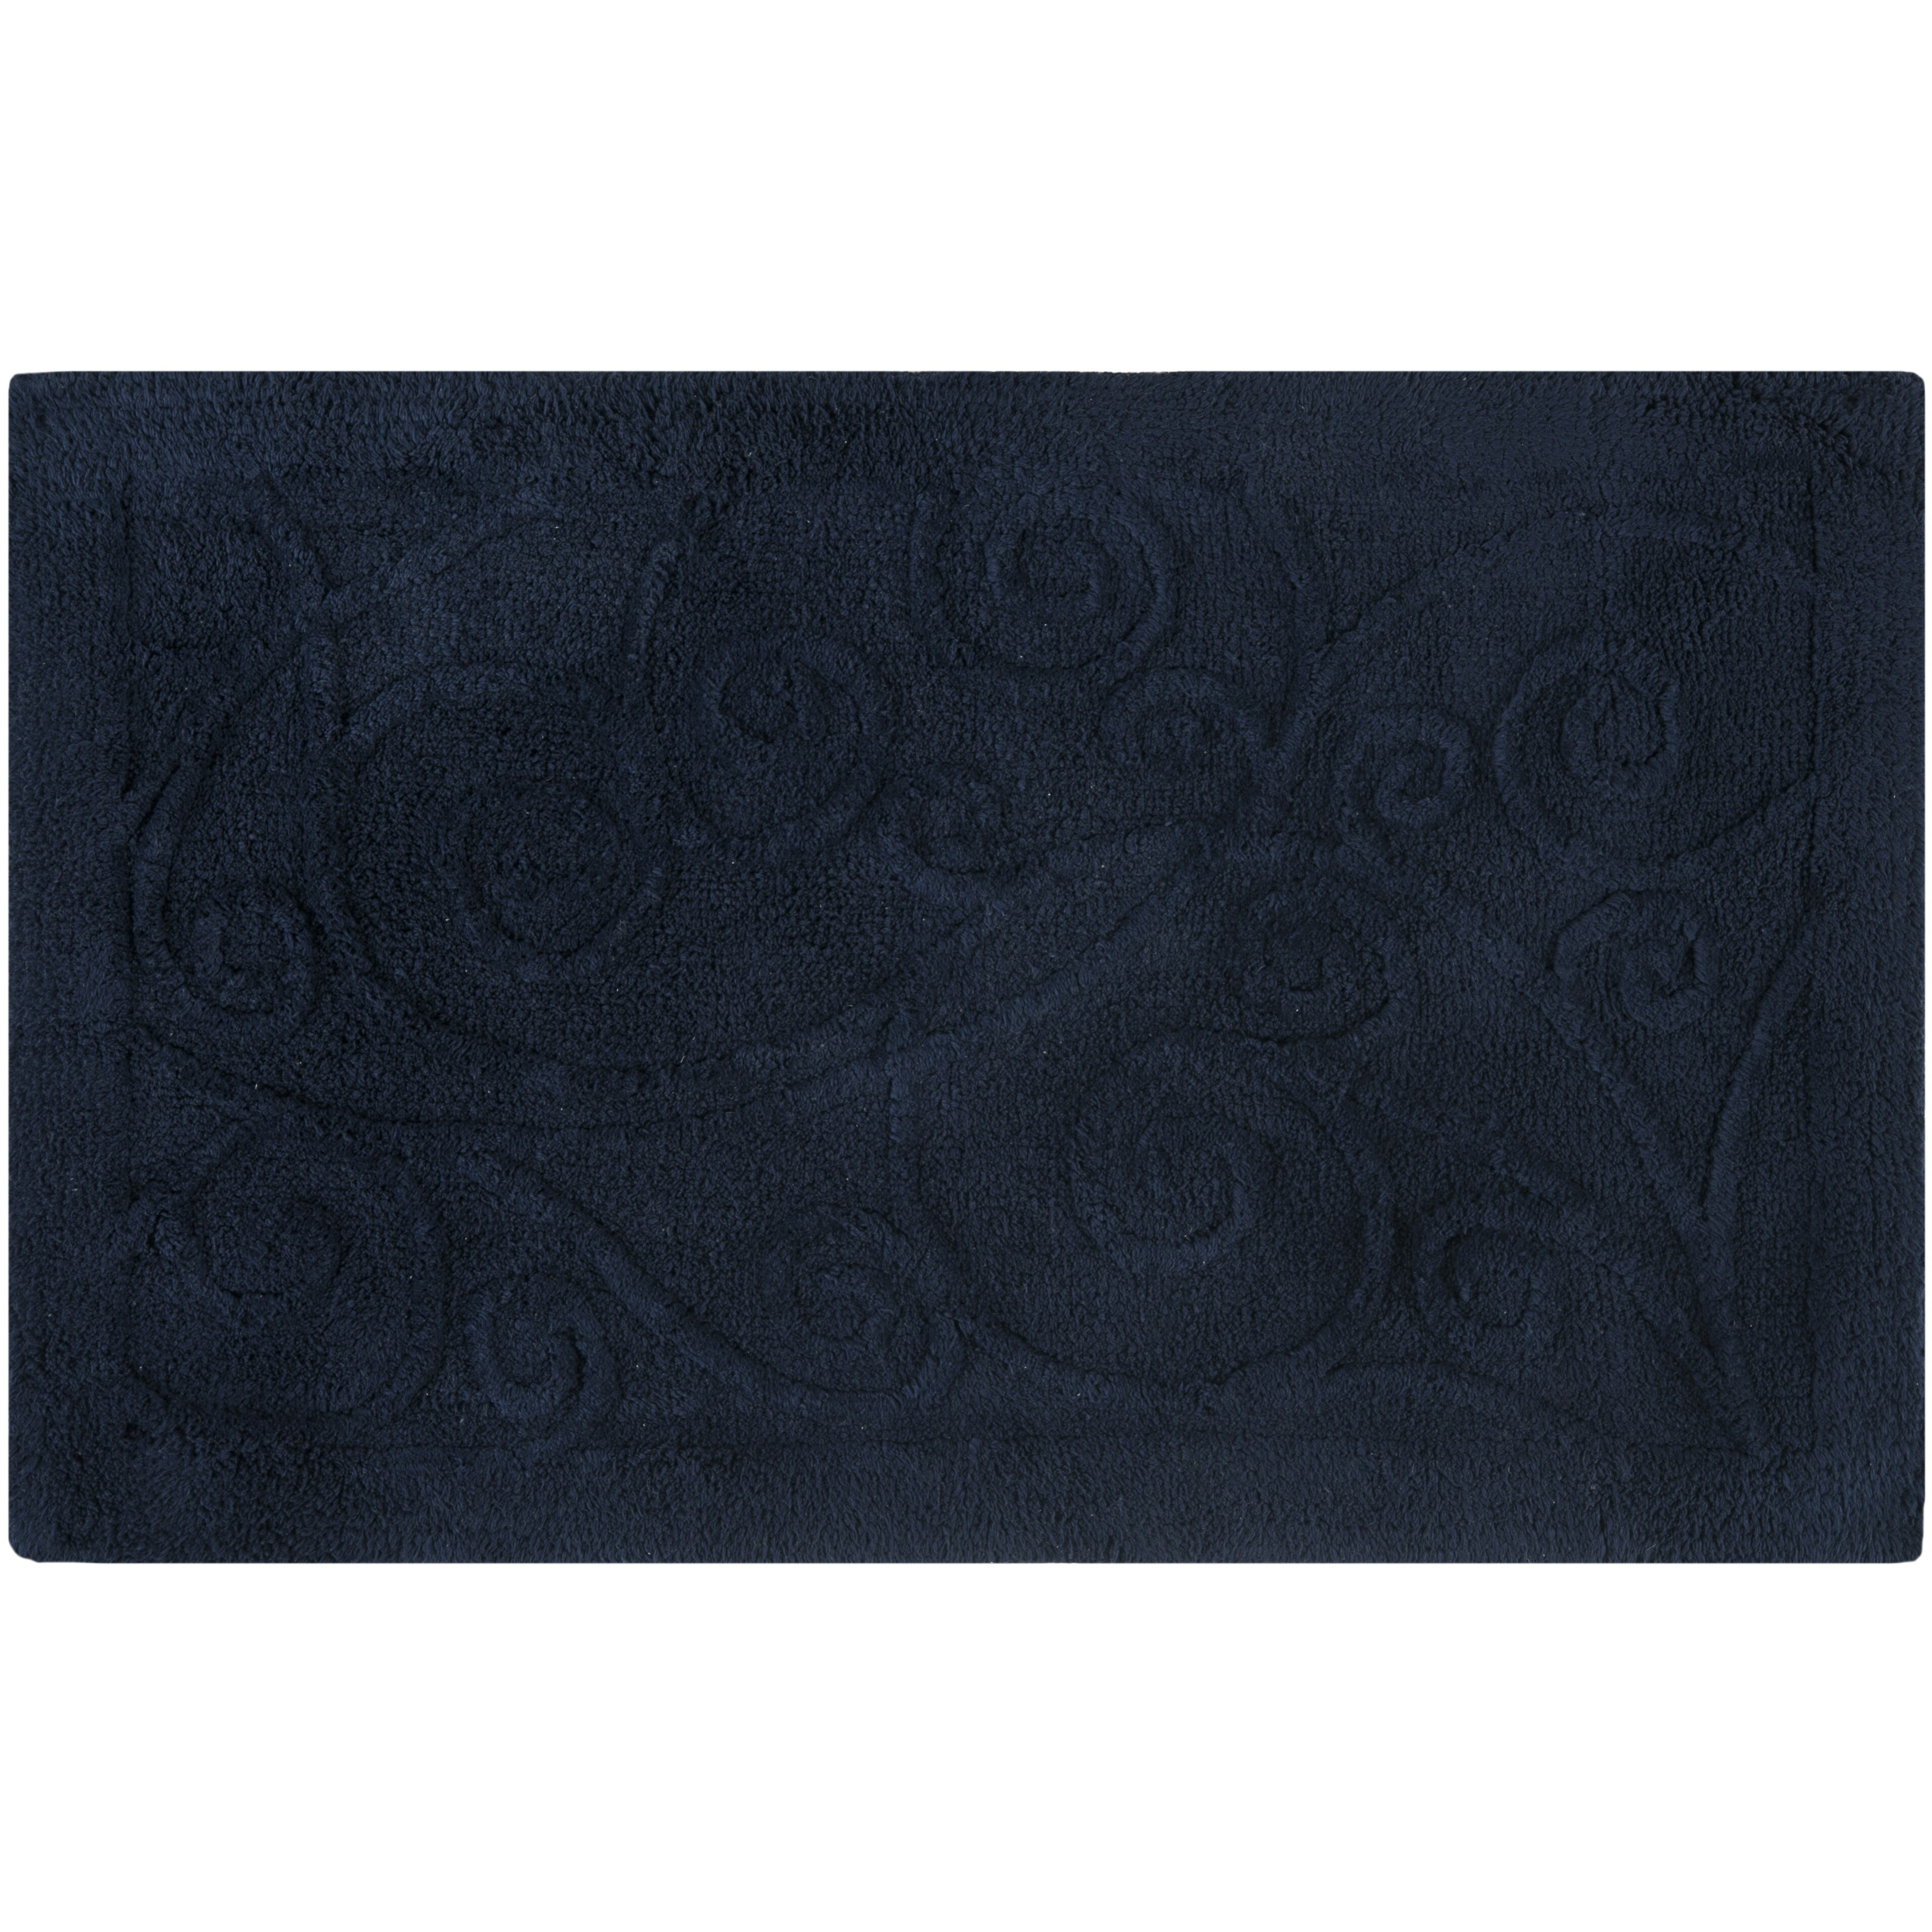 Safavieh plush master bath rug vi reviews for Master bathroom rugs